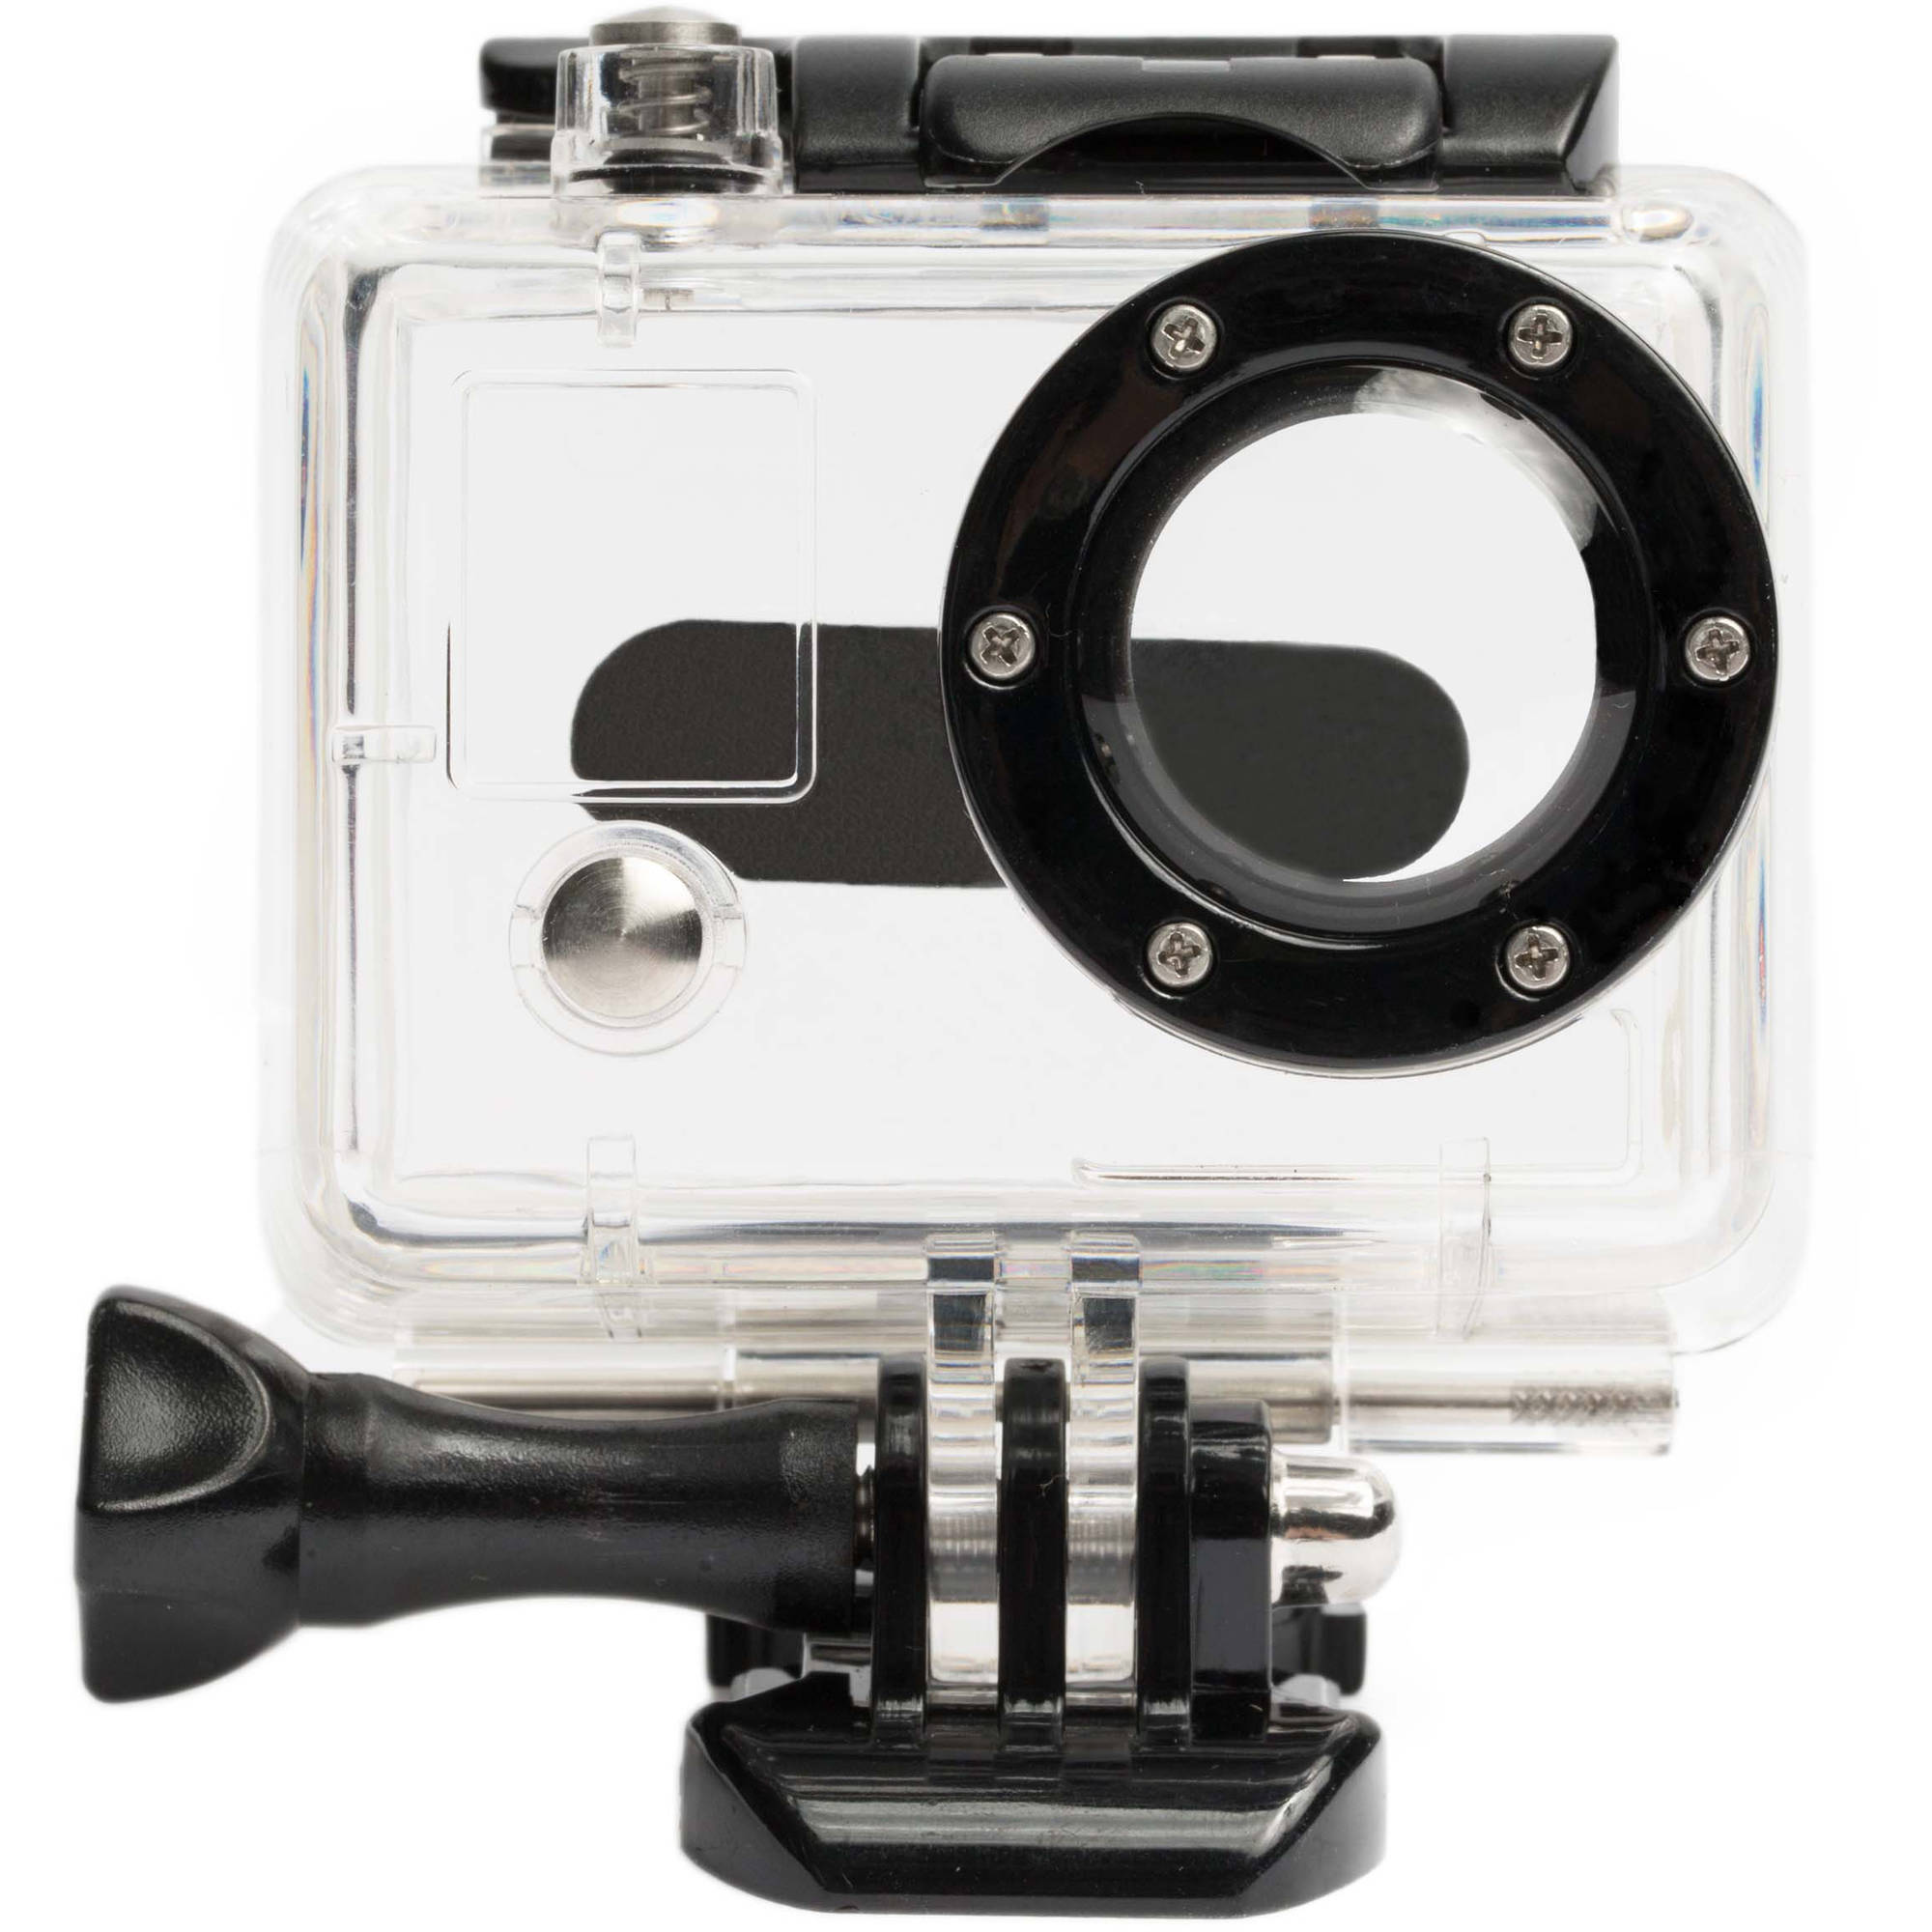 KAYATA for Transparent Waterproof Housing for GoPro HERO Gen 1 & 2